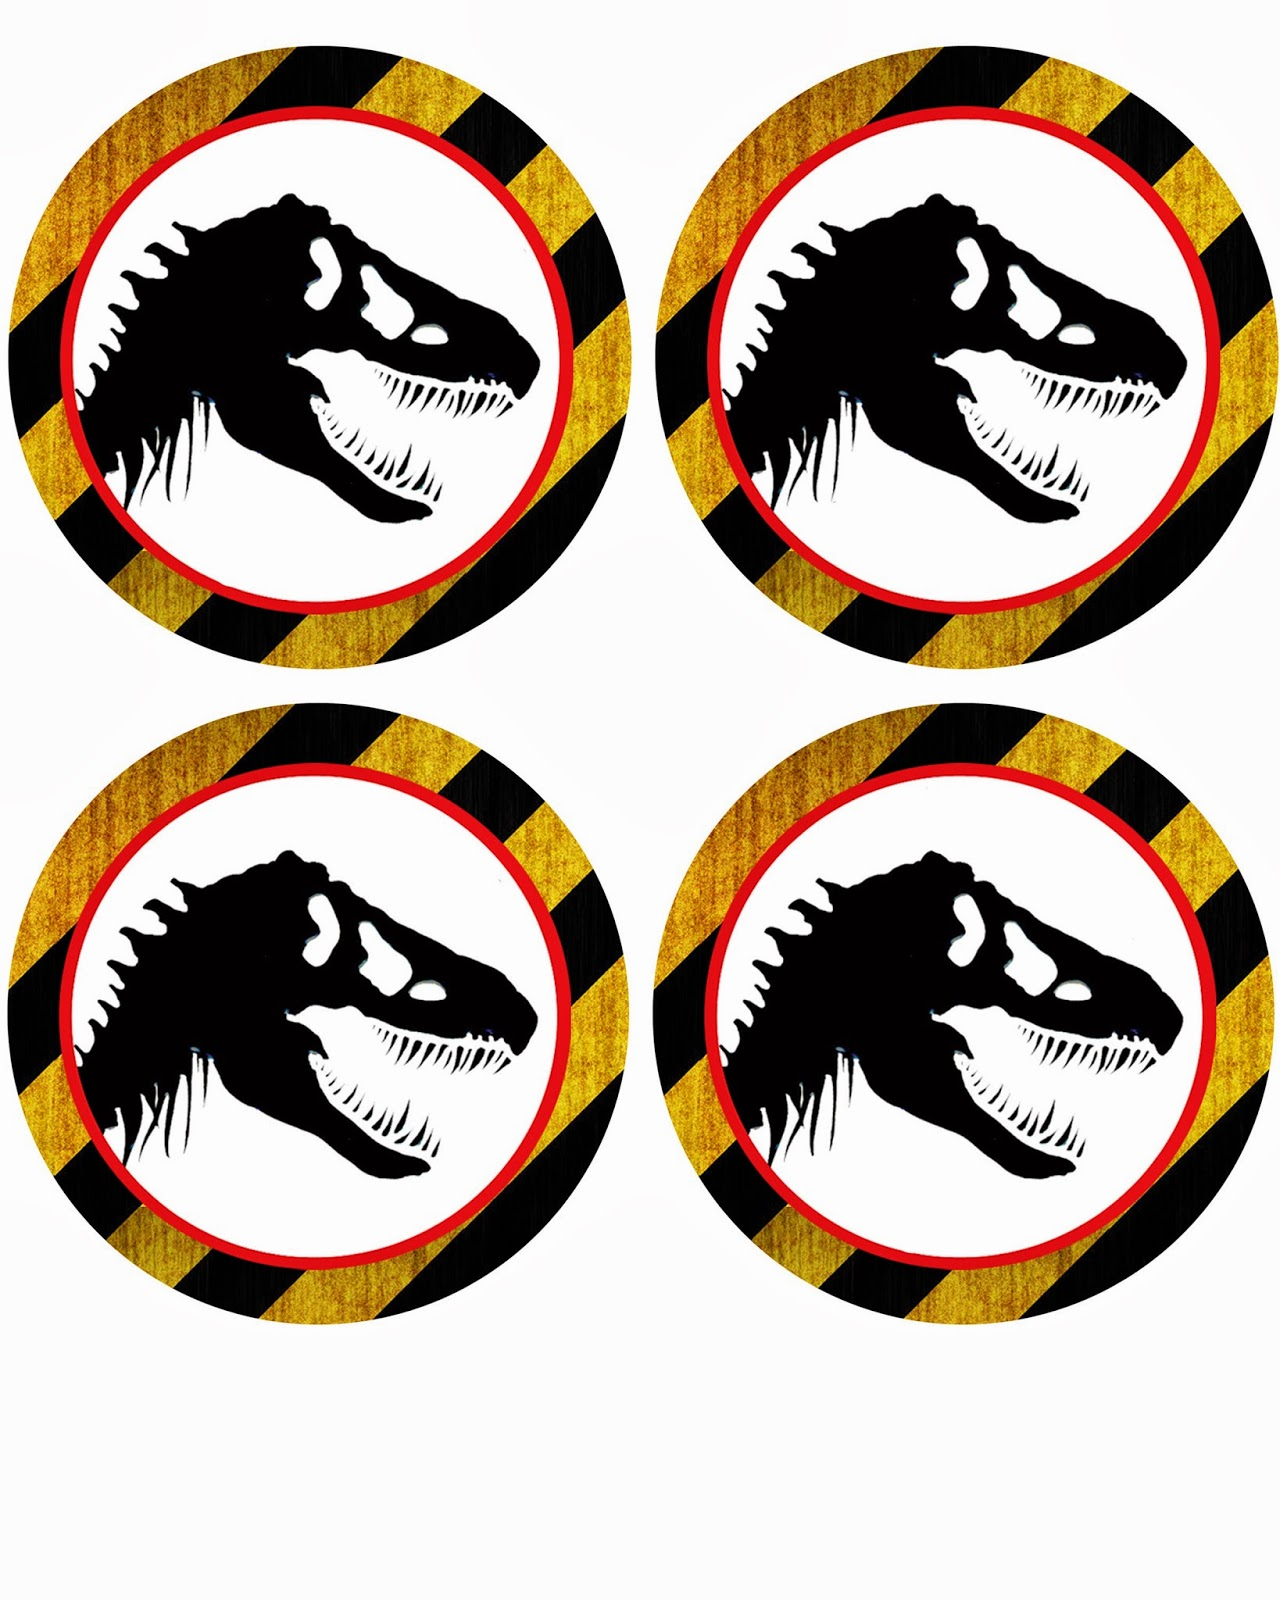 Free Dinosaur Jurrasic Park Party Printables